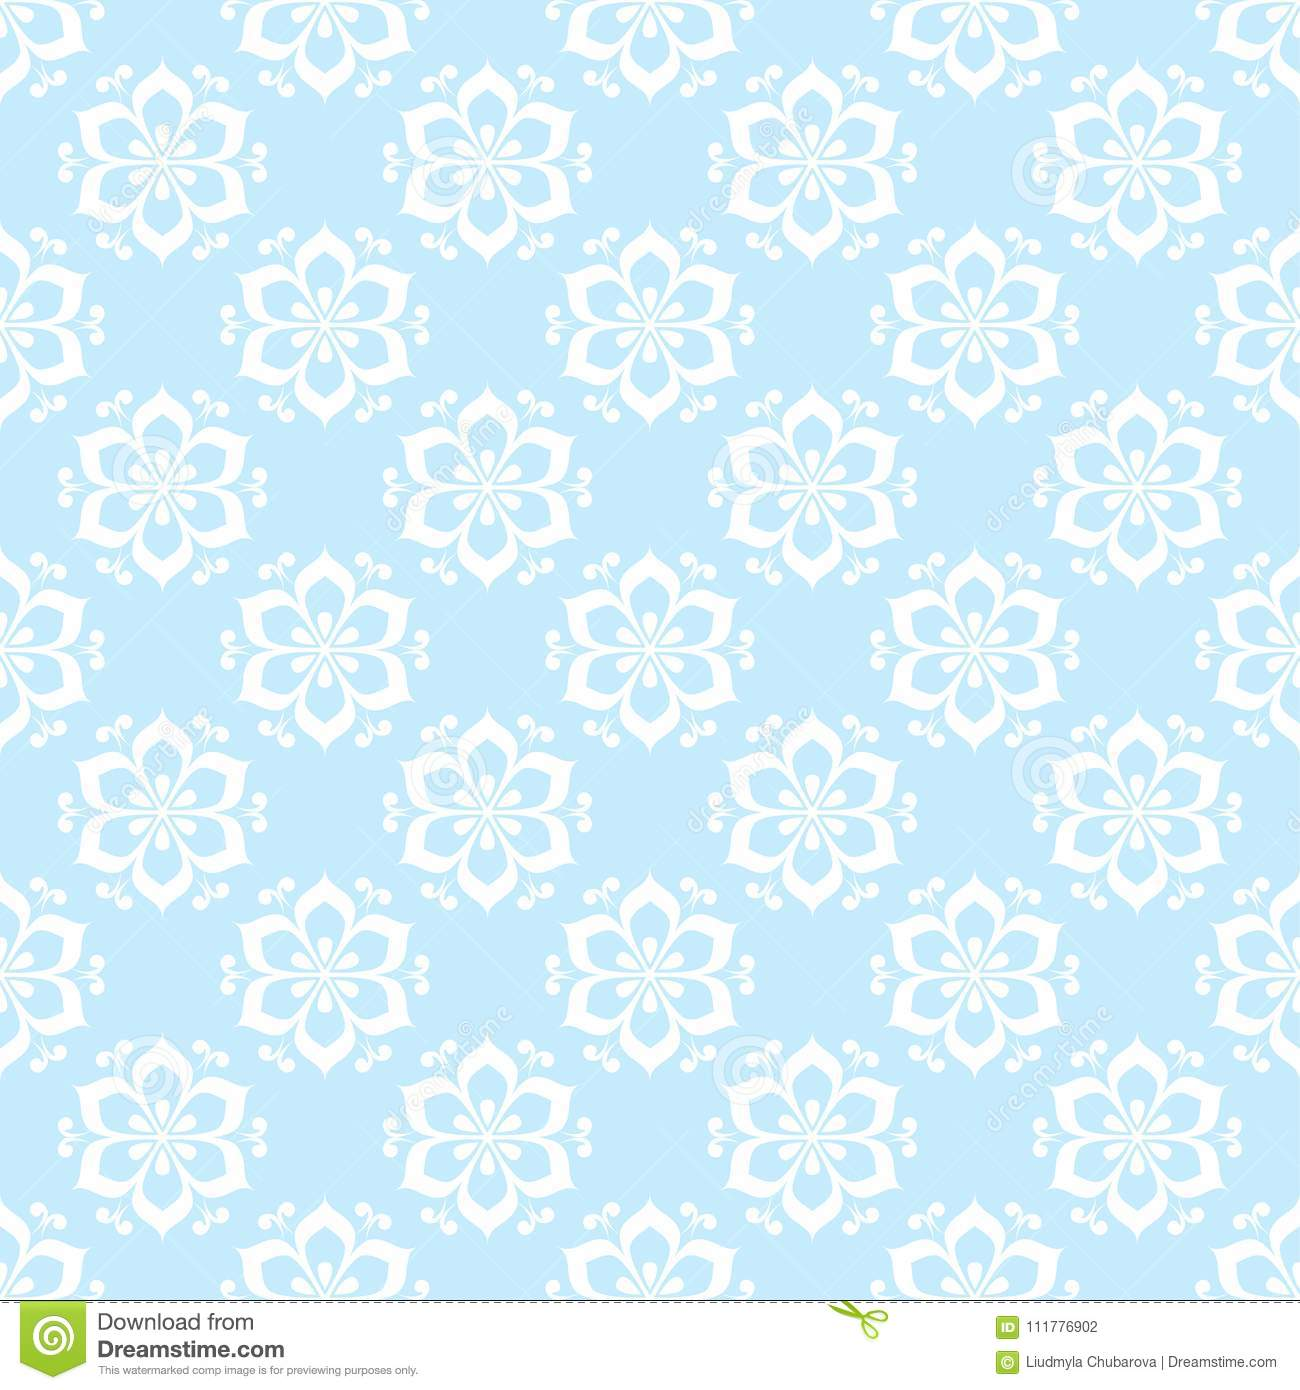 Floral colored seamless pattern. Blue and white background with fower elements for wallpapers